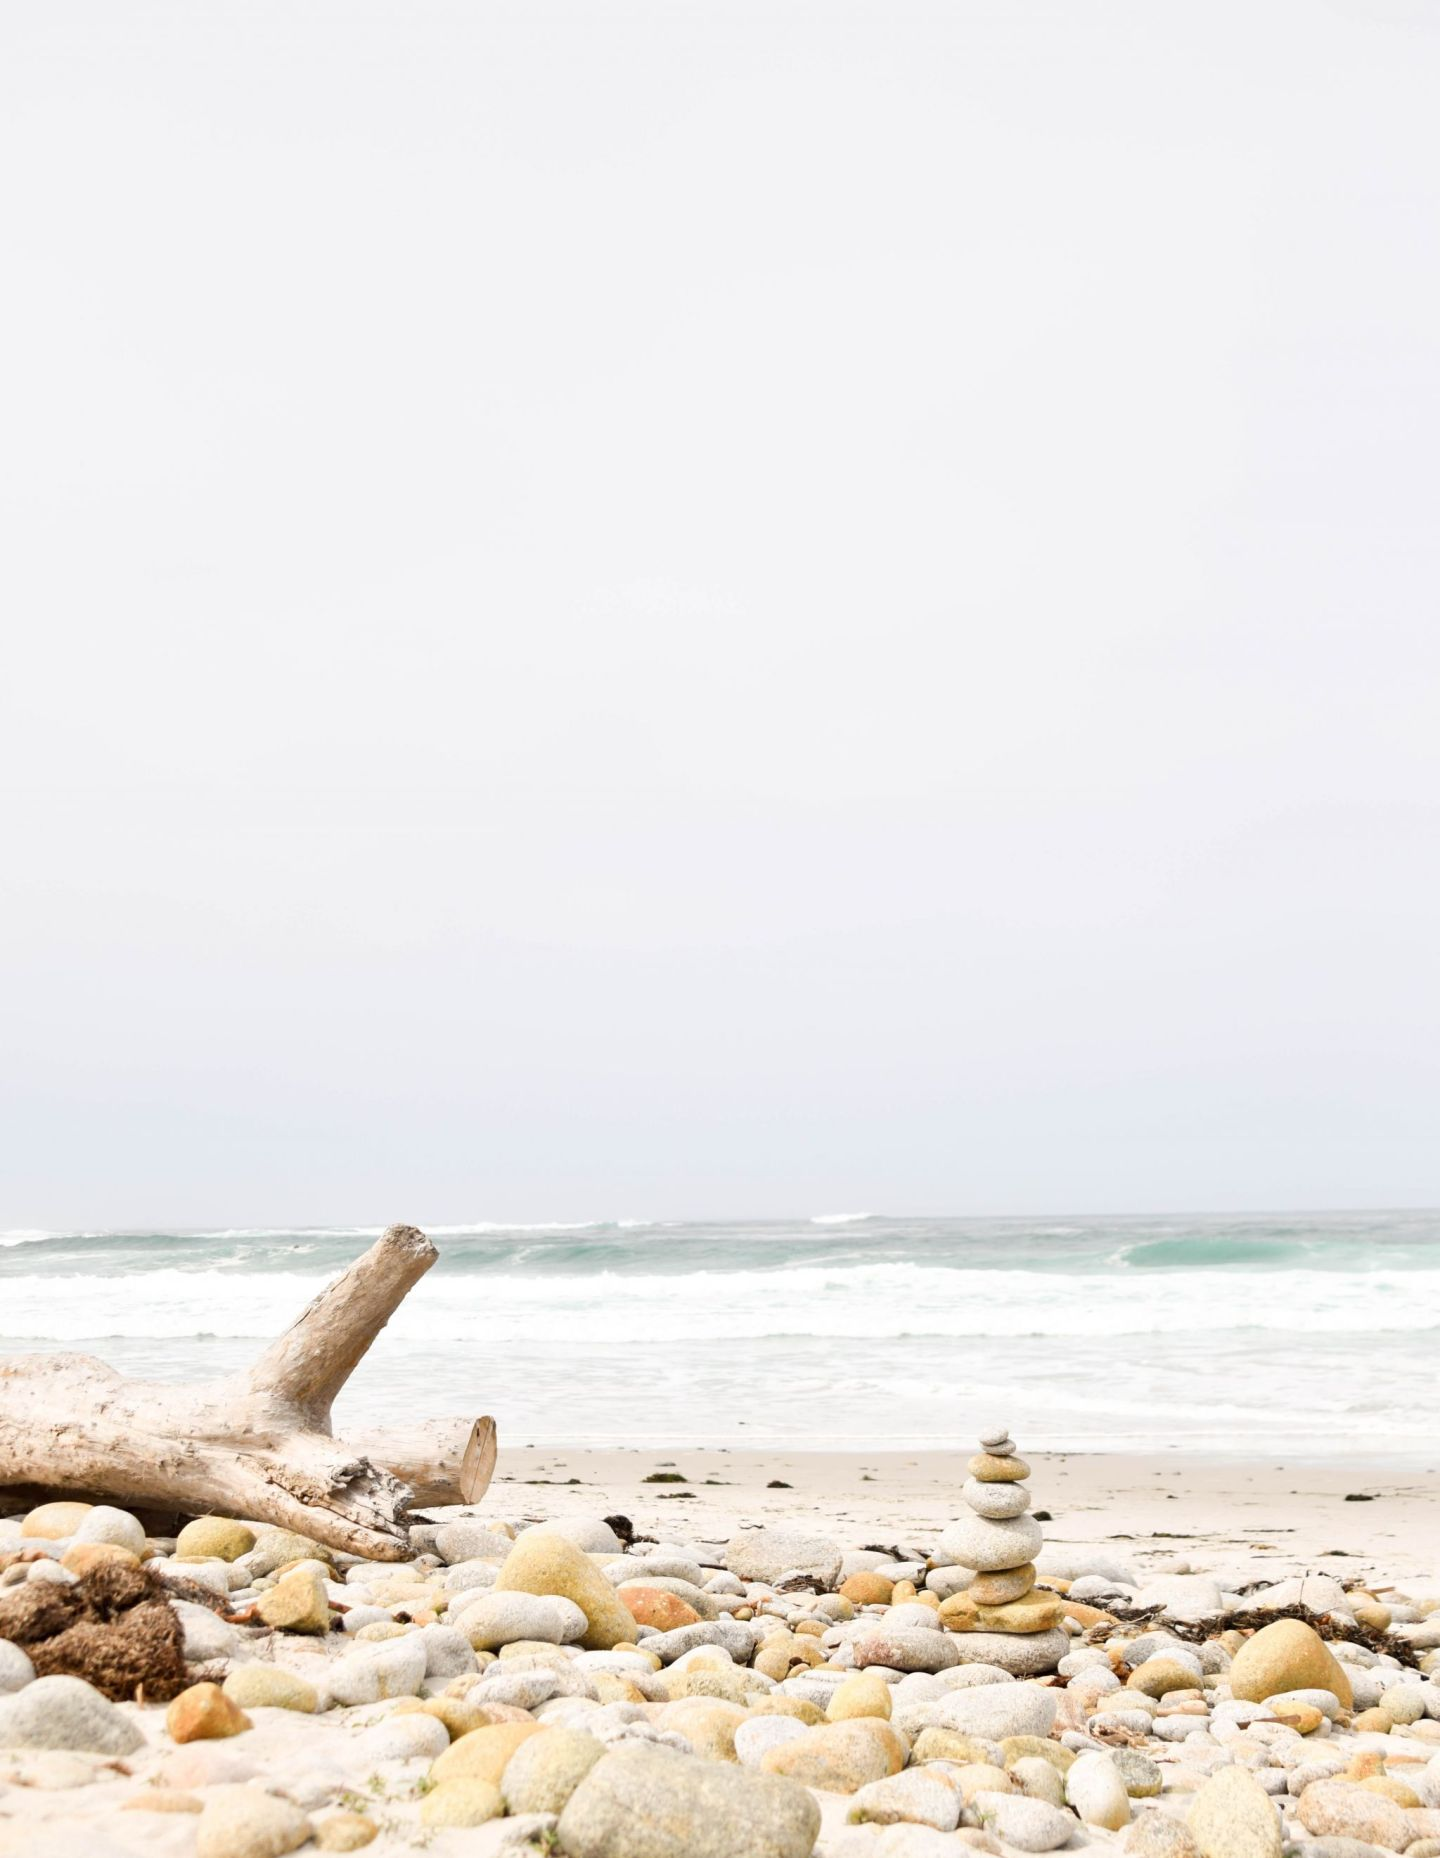 carmel-by-the-sea - 17-mile drive